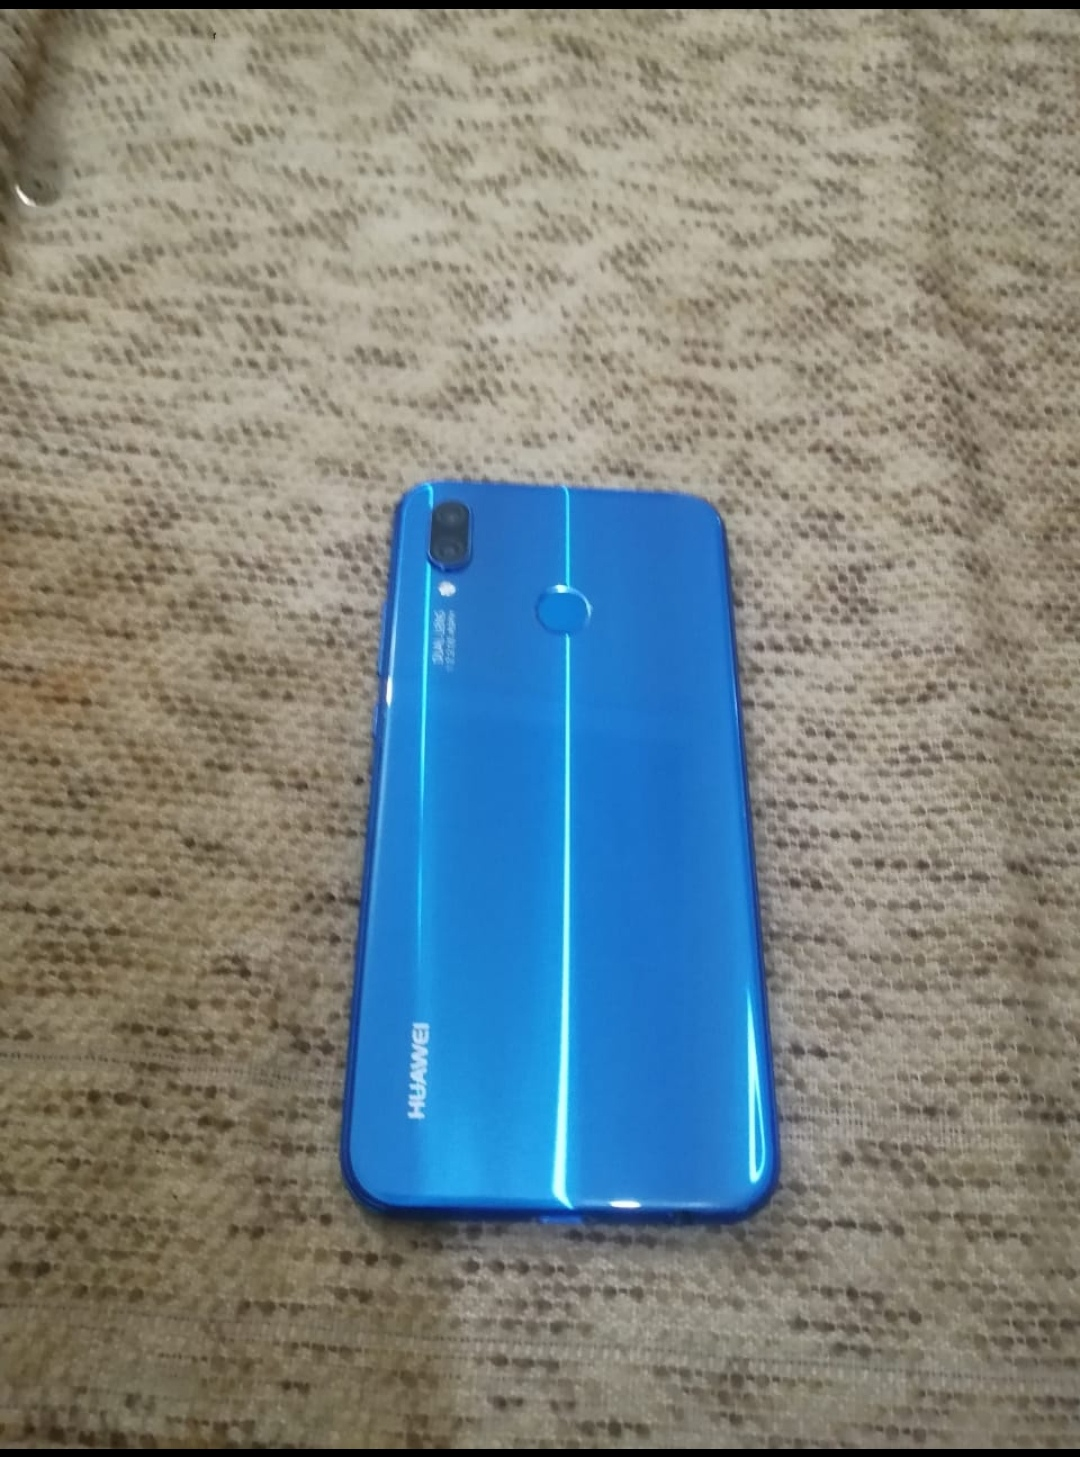 Huawei p20 lite for sale - photo 2